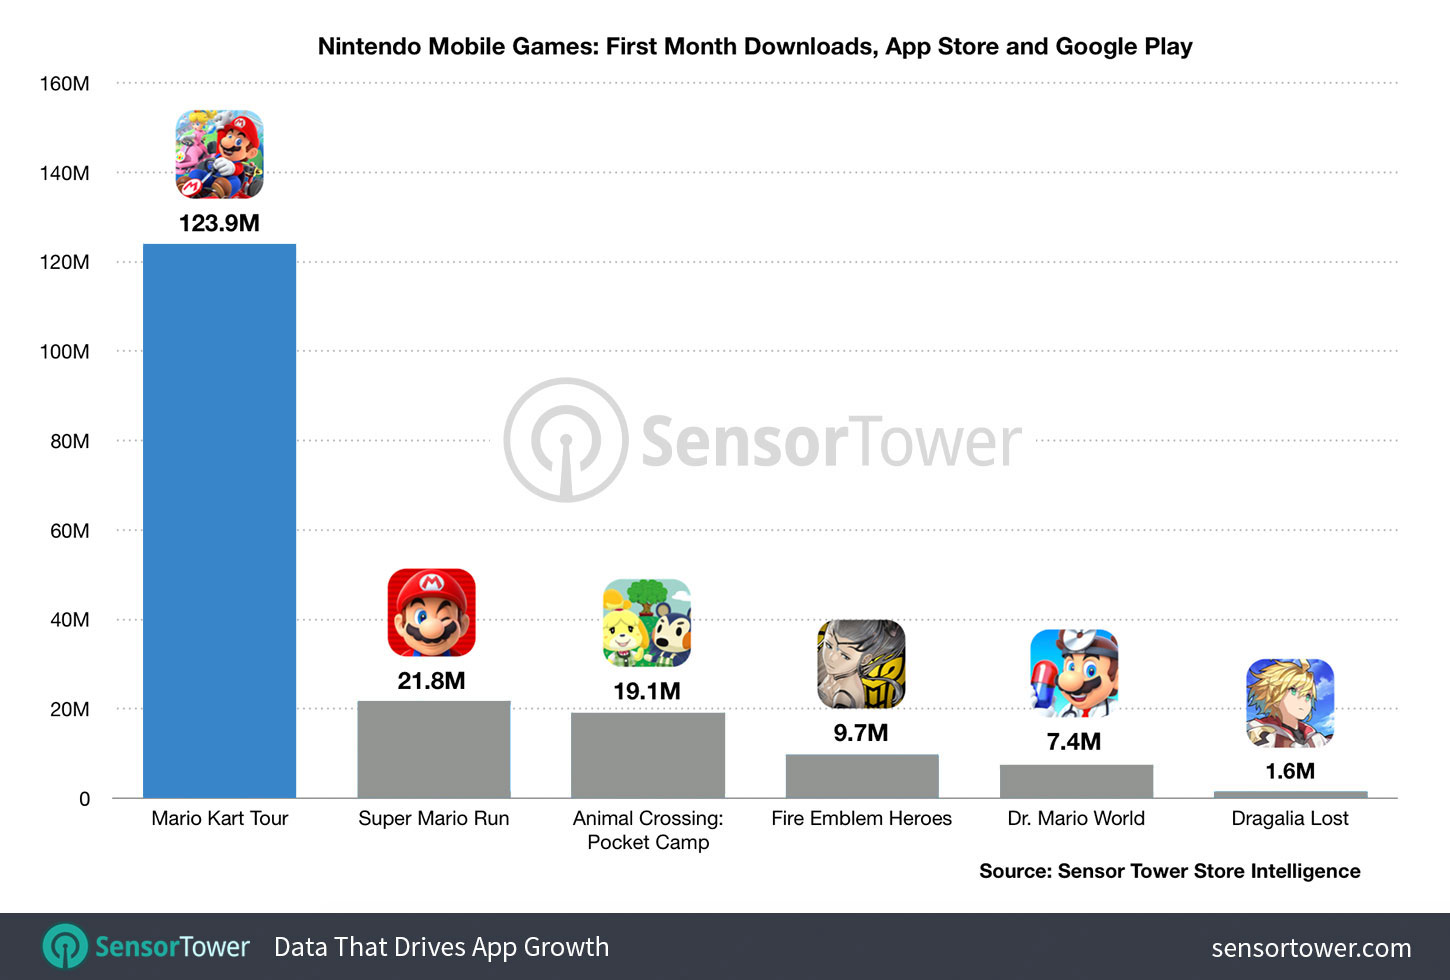 Mario Kart Tour hits 129.3 million downloads in one month